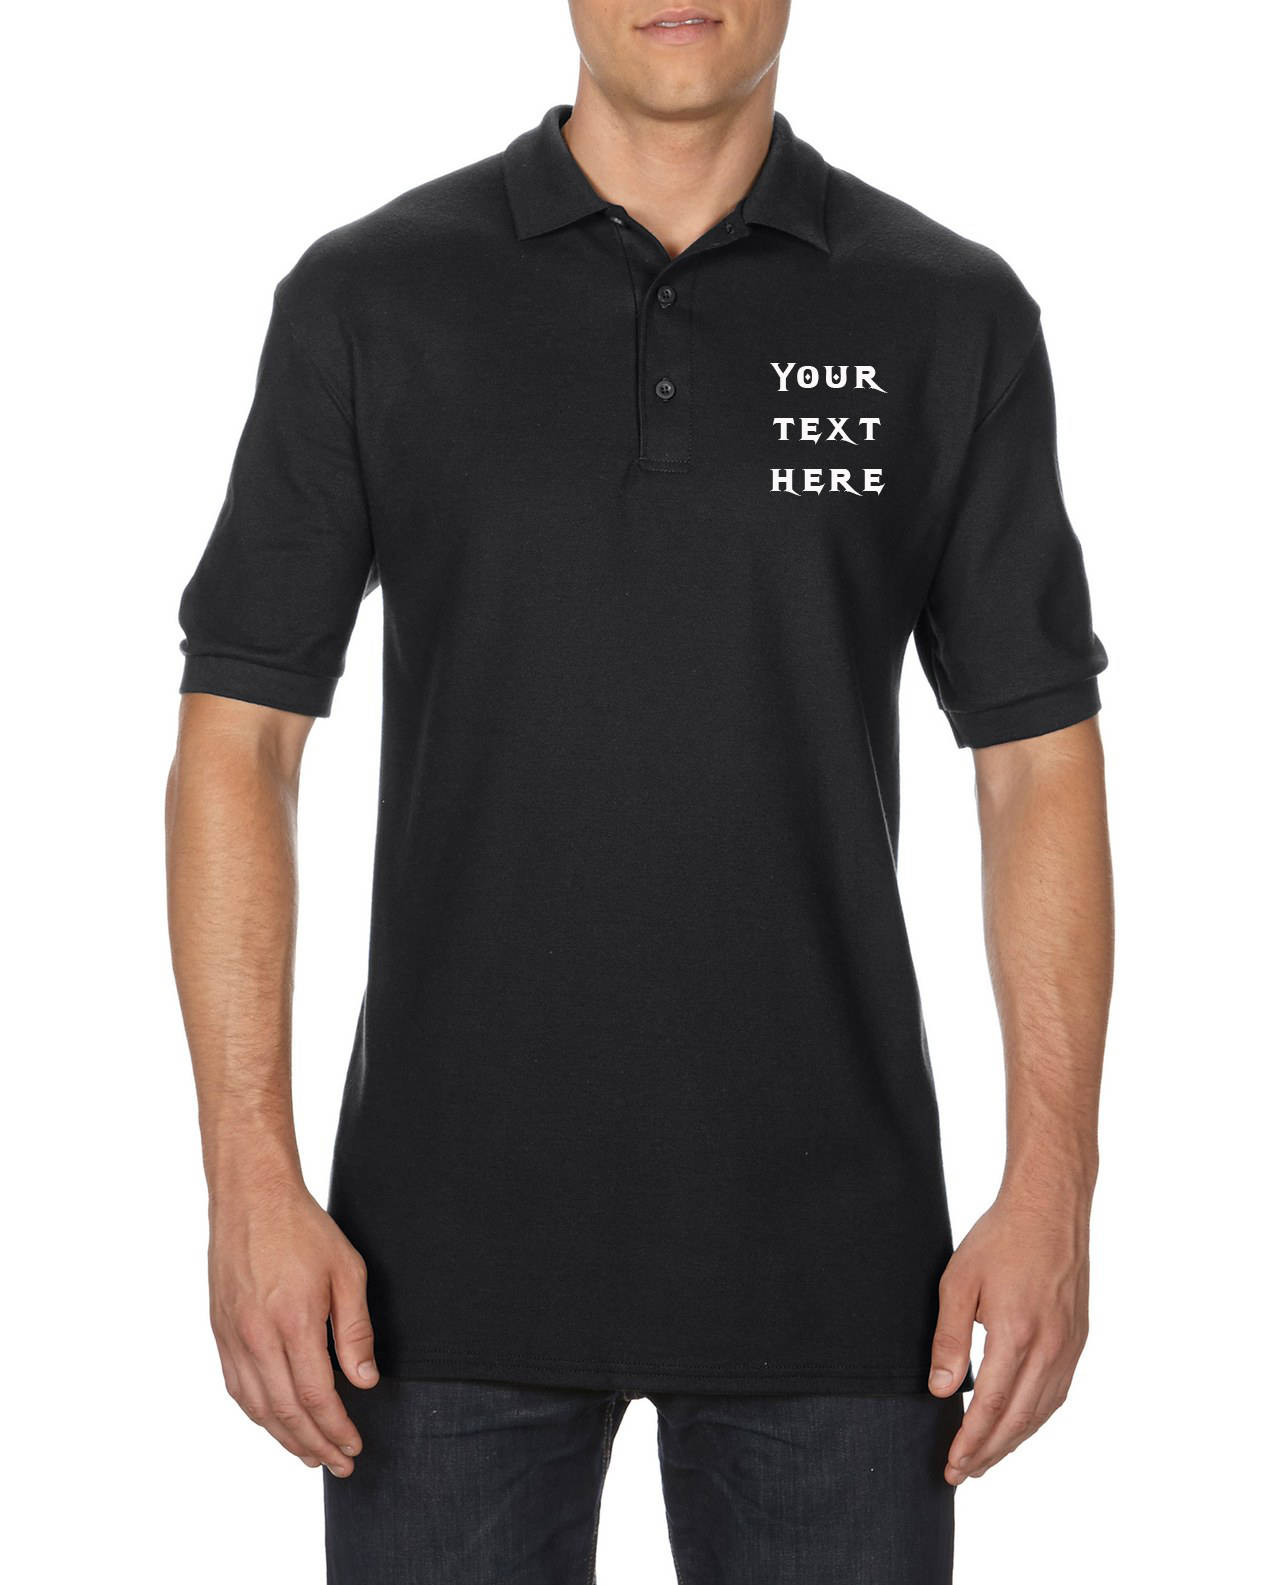 Mens Custom Embroidered Polo Shirt Customized Family Etsy